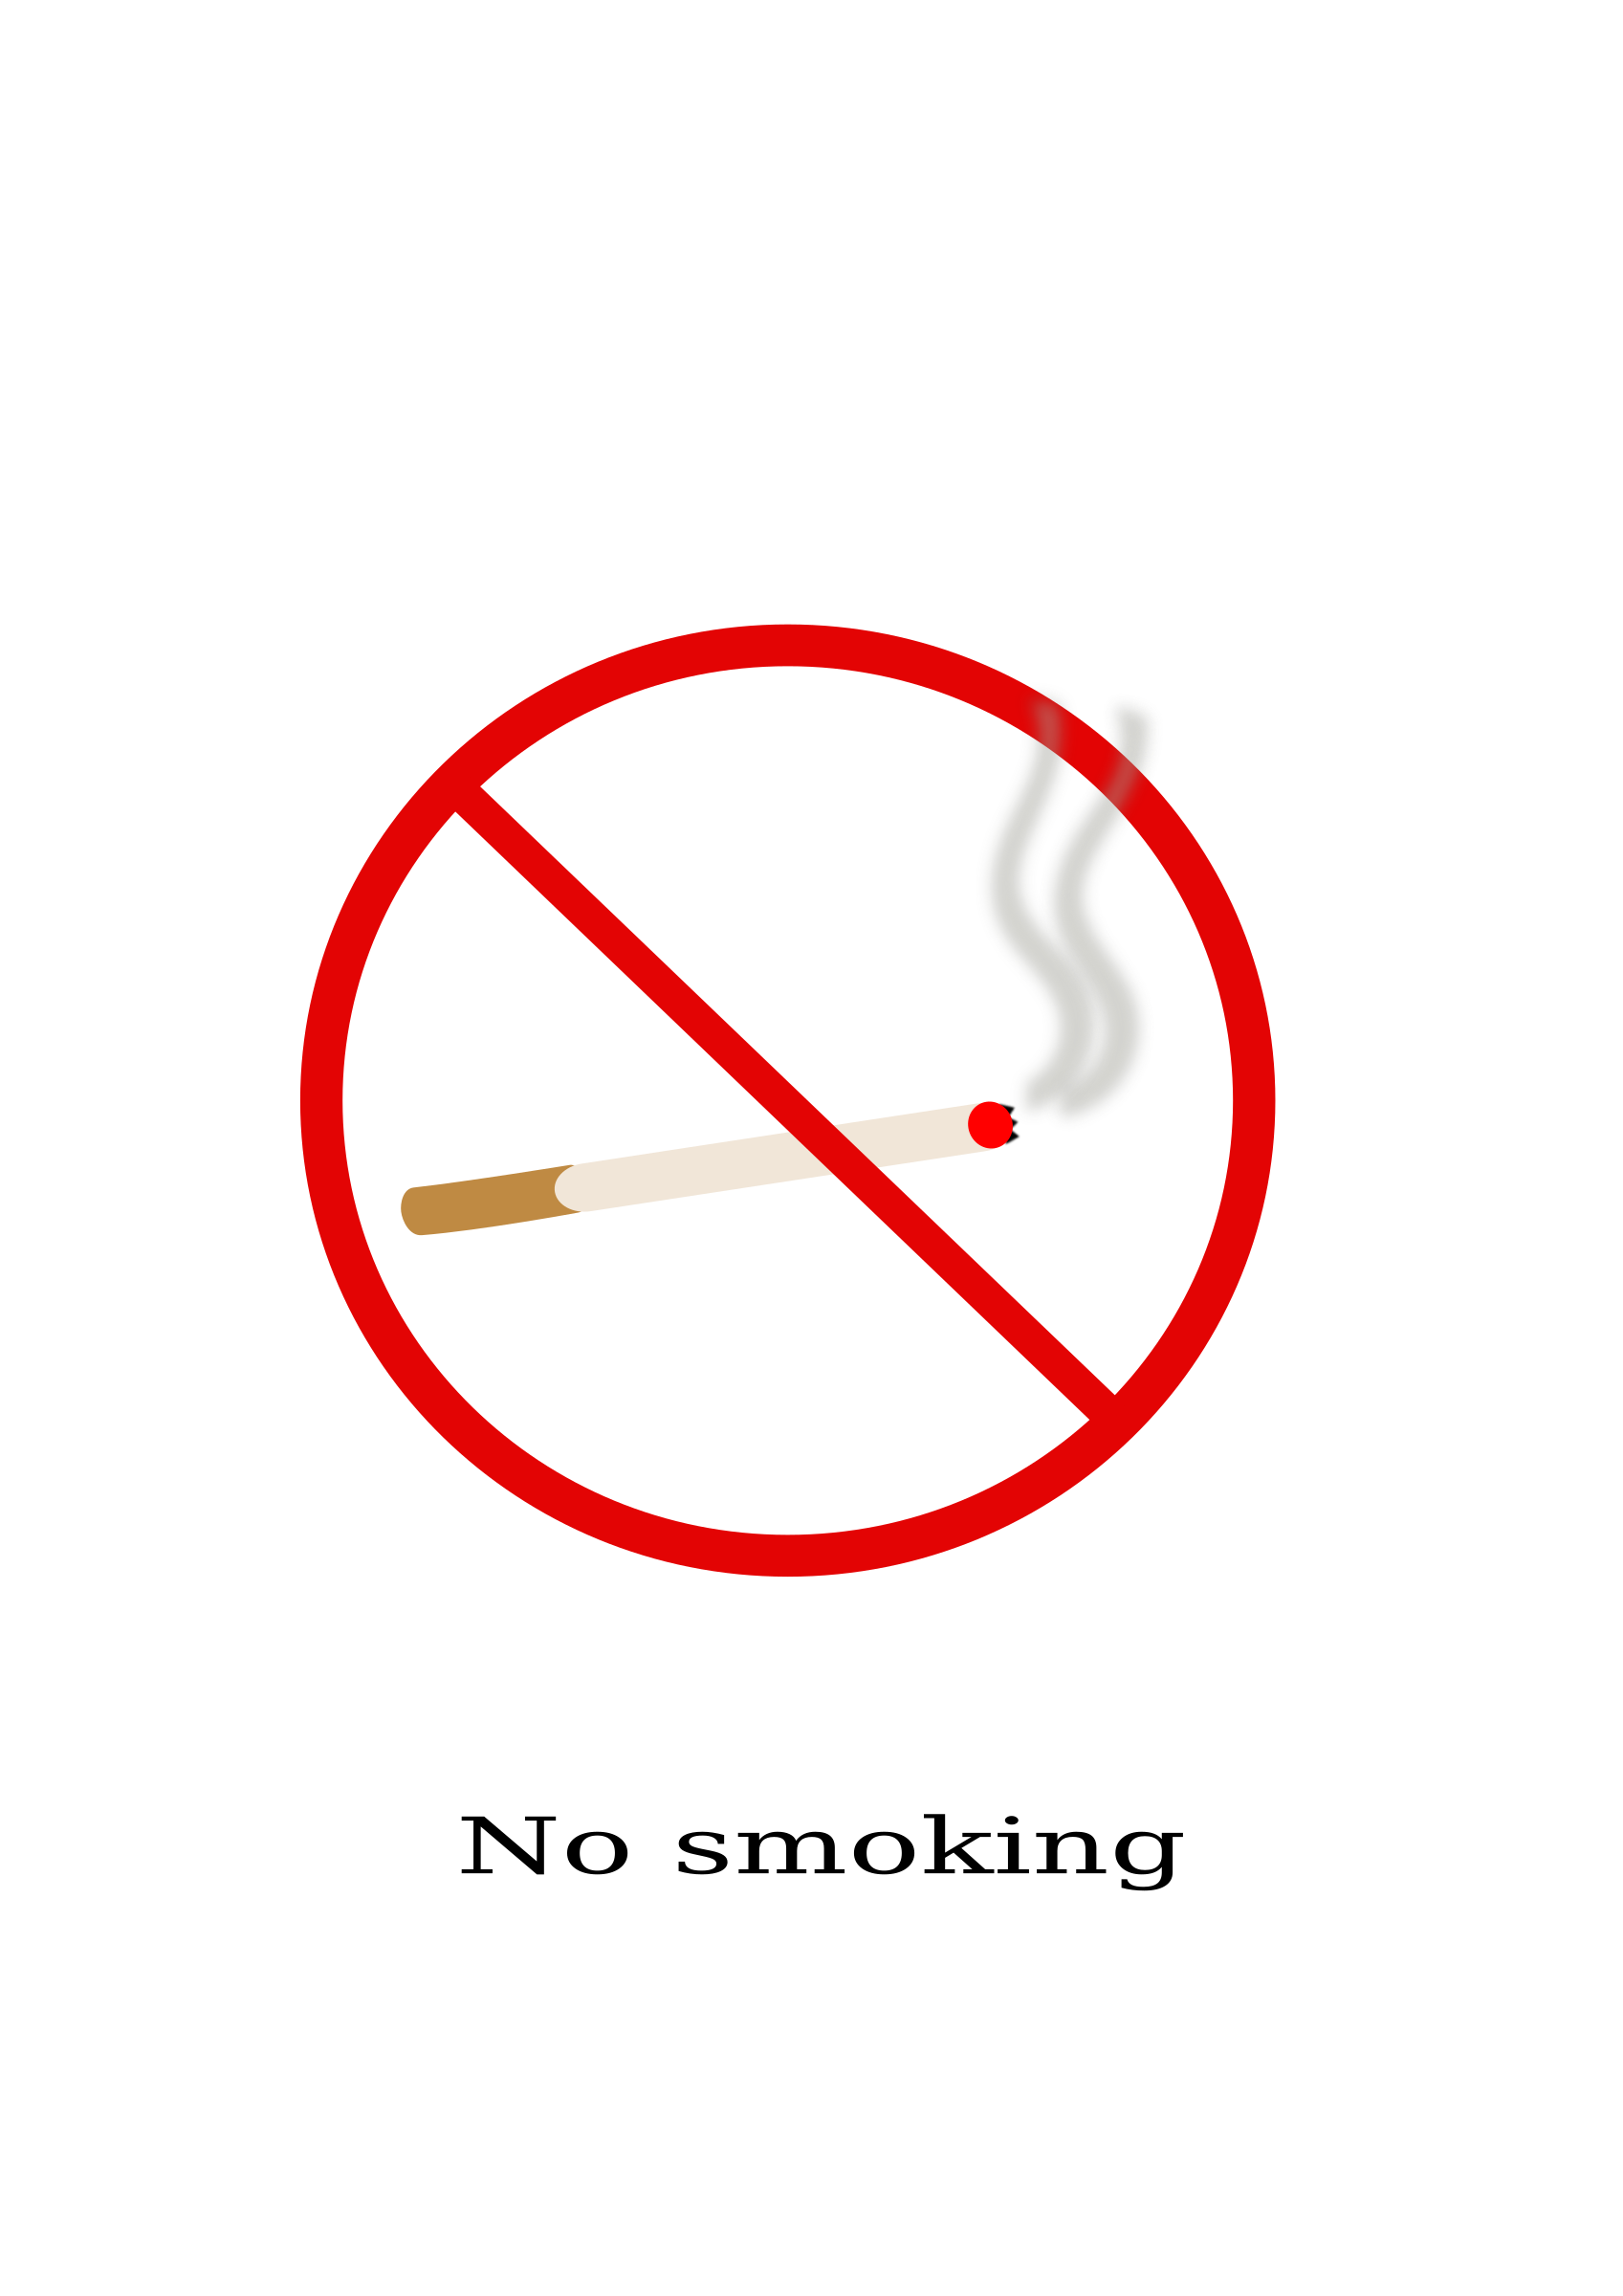 Warning sign - No smoking by ksrujana96